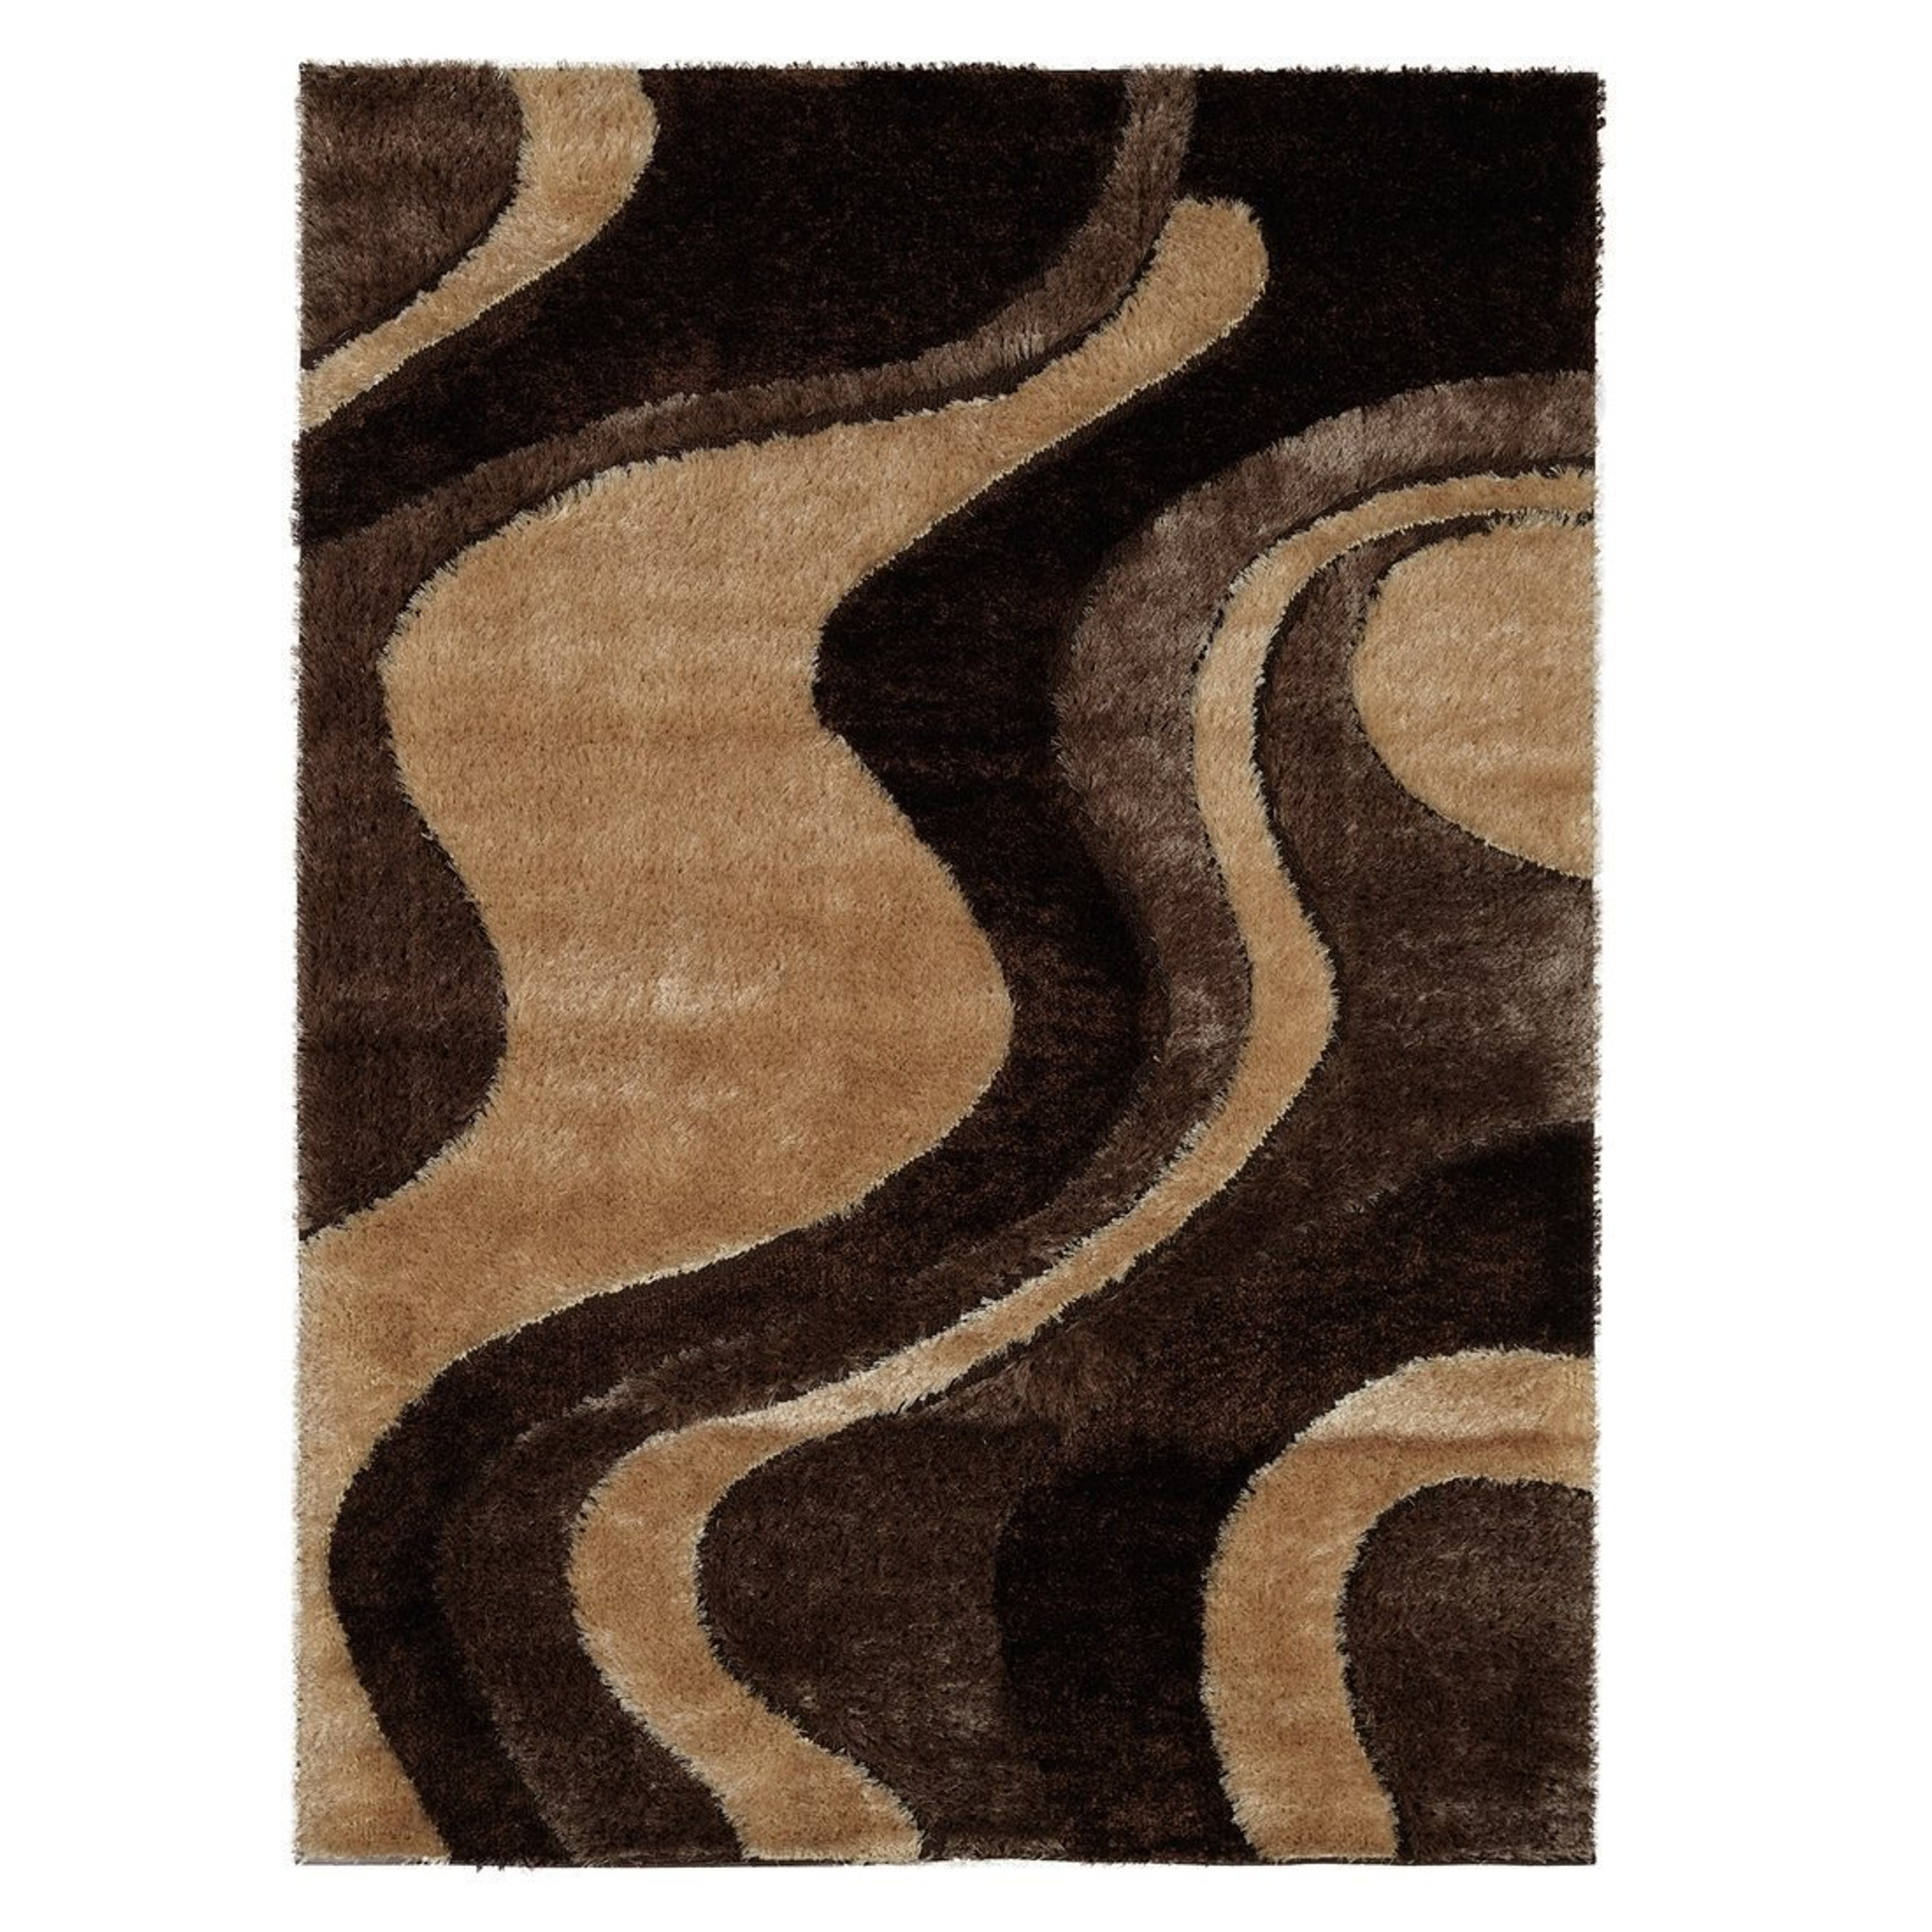 Csr3942 5x7 Casa Shag 3d Brown Beige Area Rug By Km Rugs